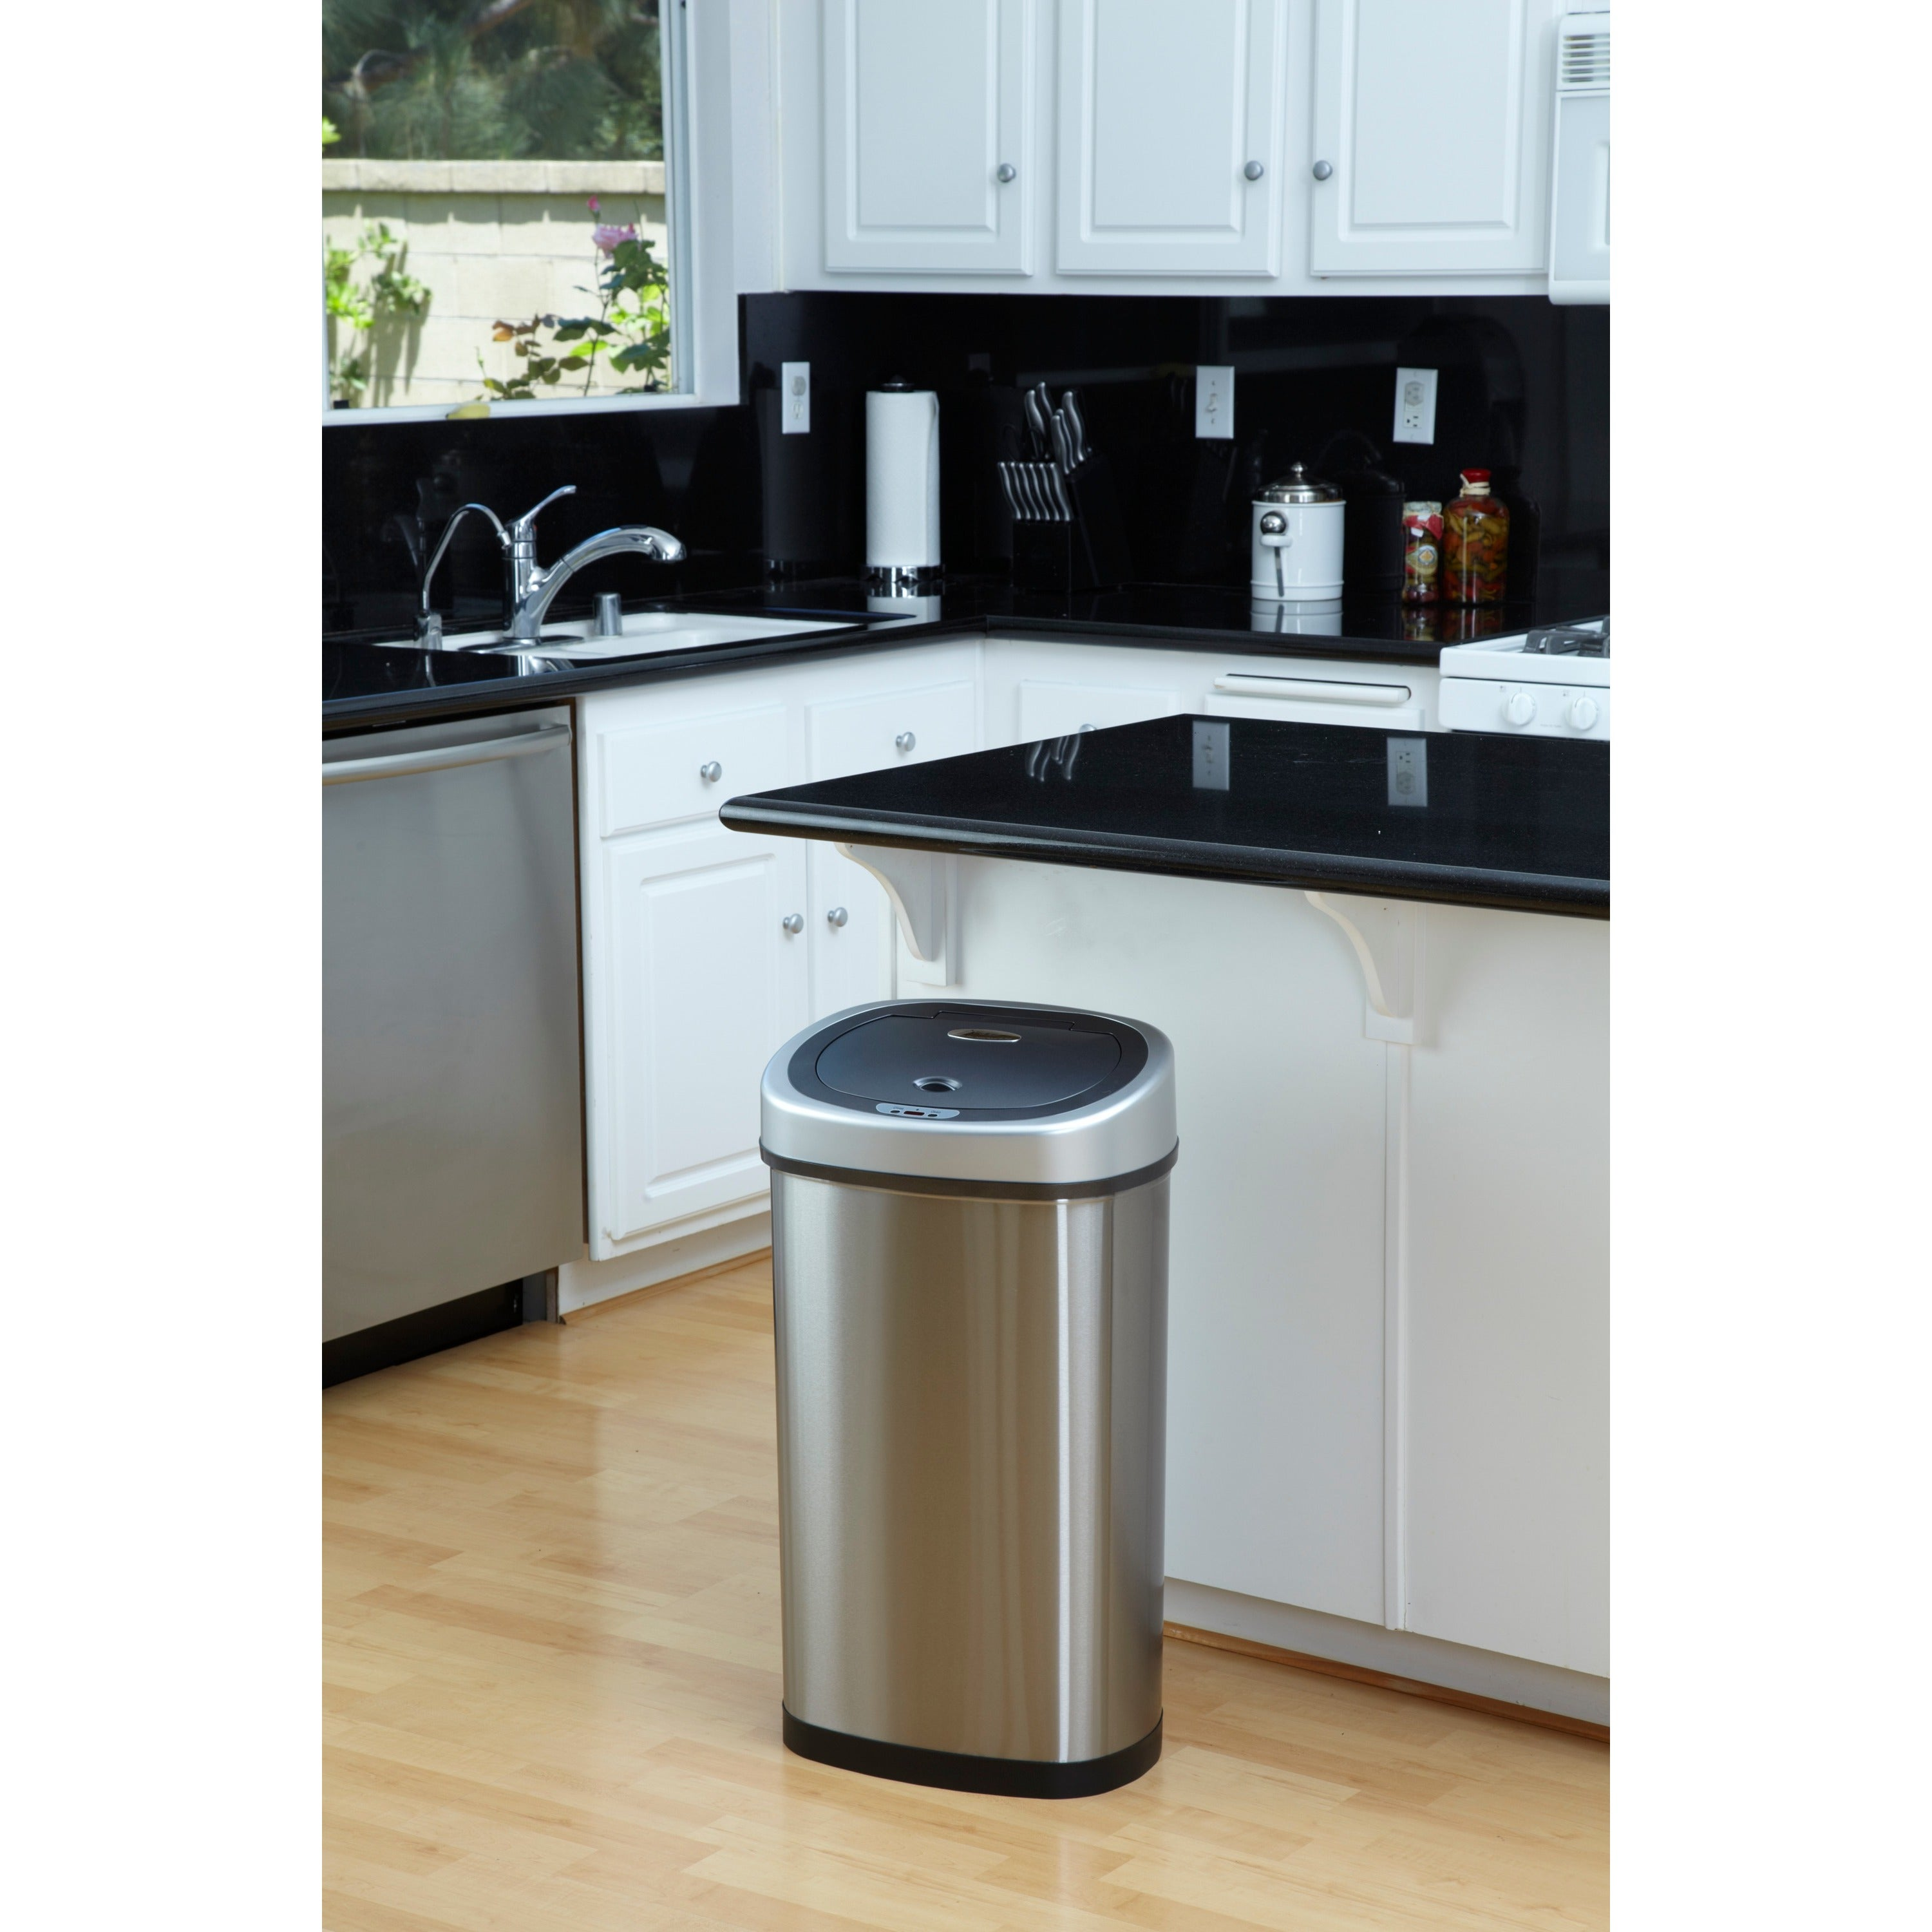 Motion Sensor Stainless Steel 2 In 1 Combo Bathroom/ Kitchen Trash Can Set    Free Shipping Today   Overstock.com   12219537